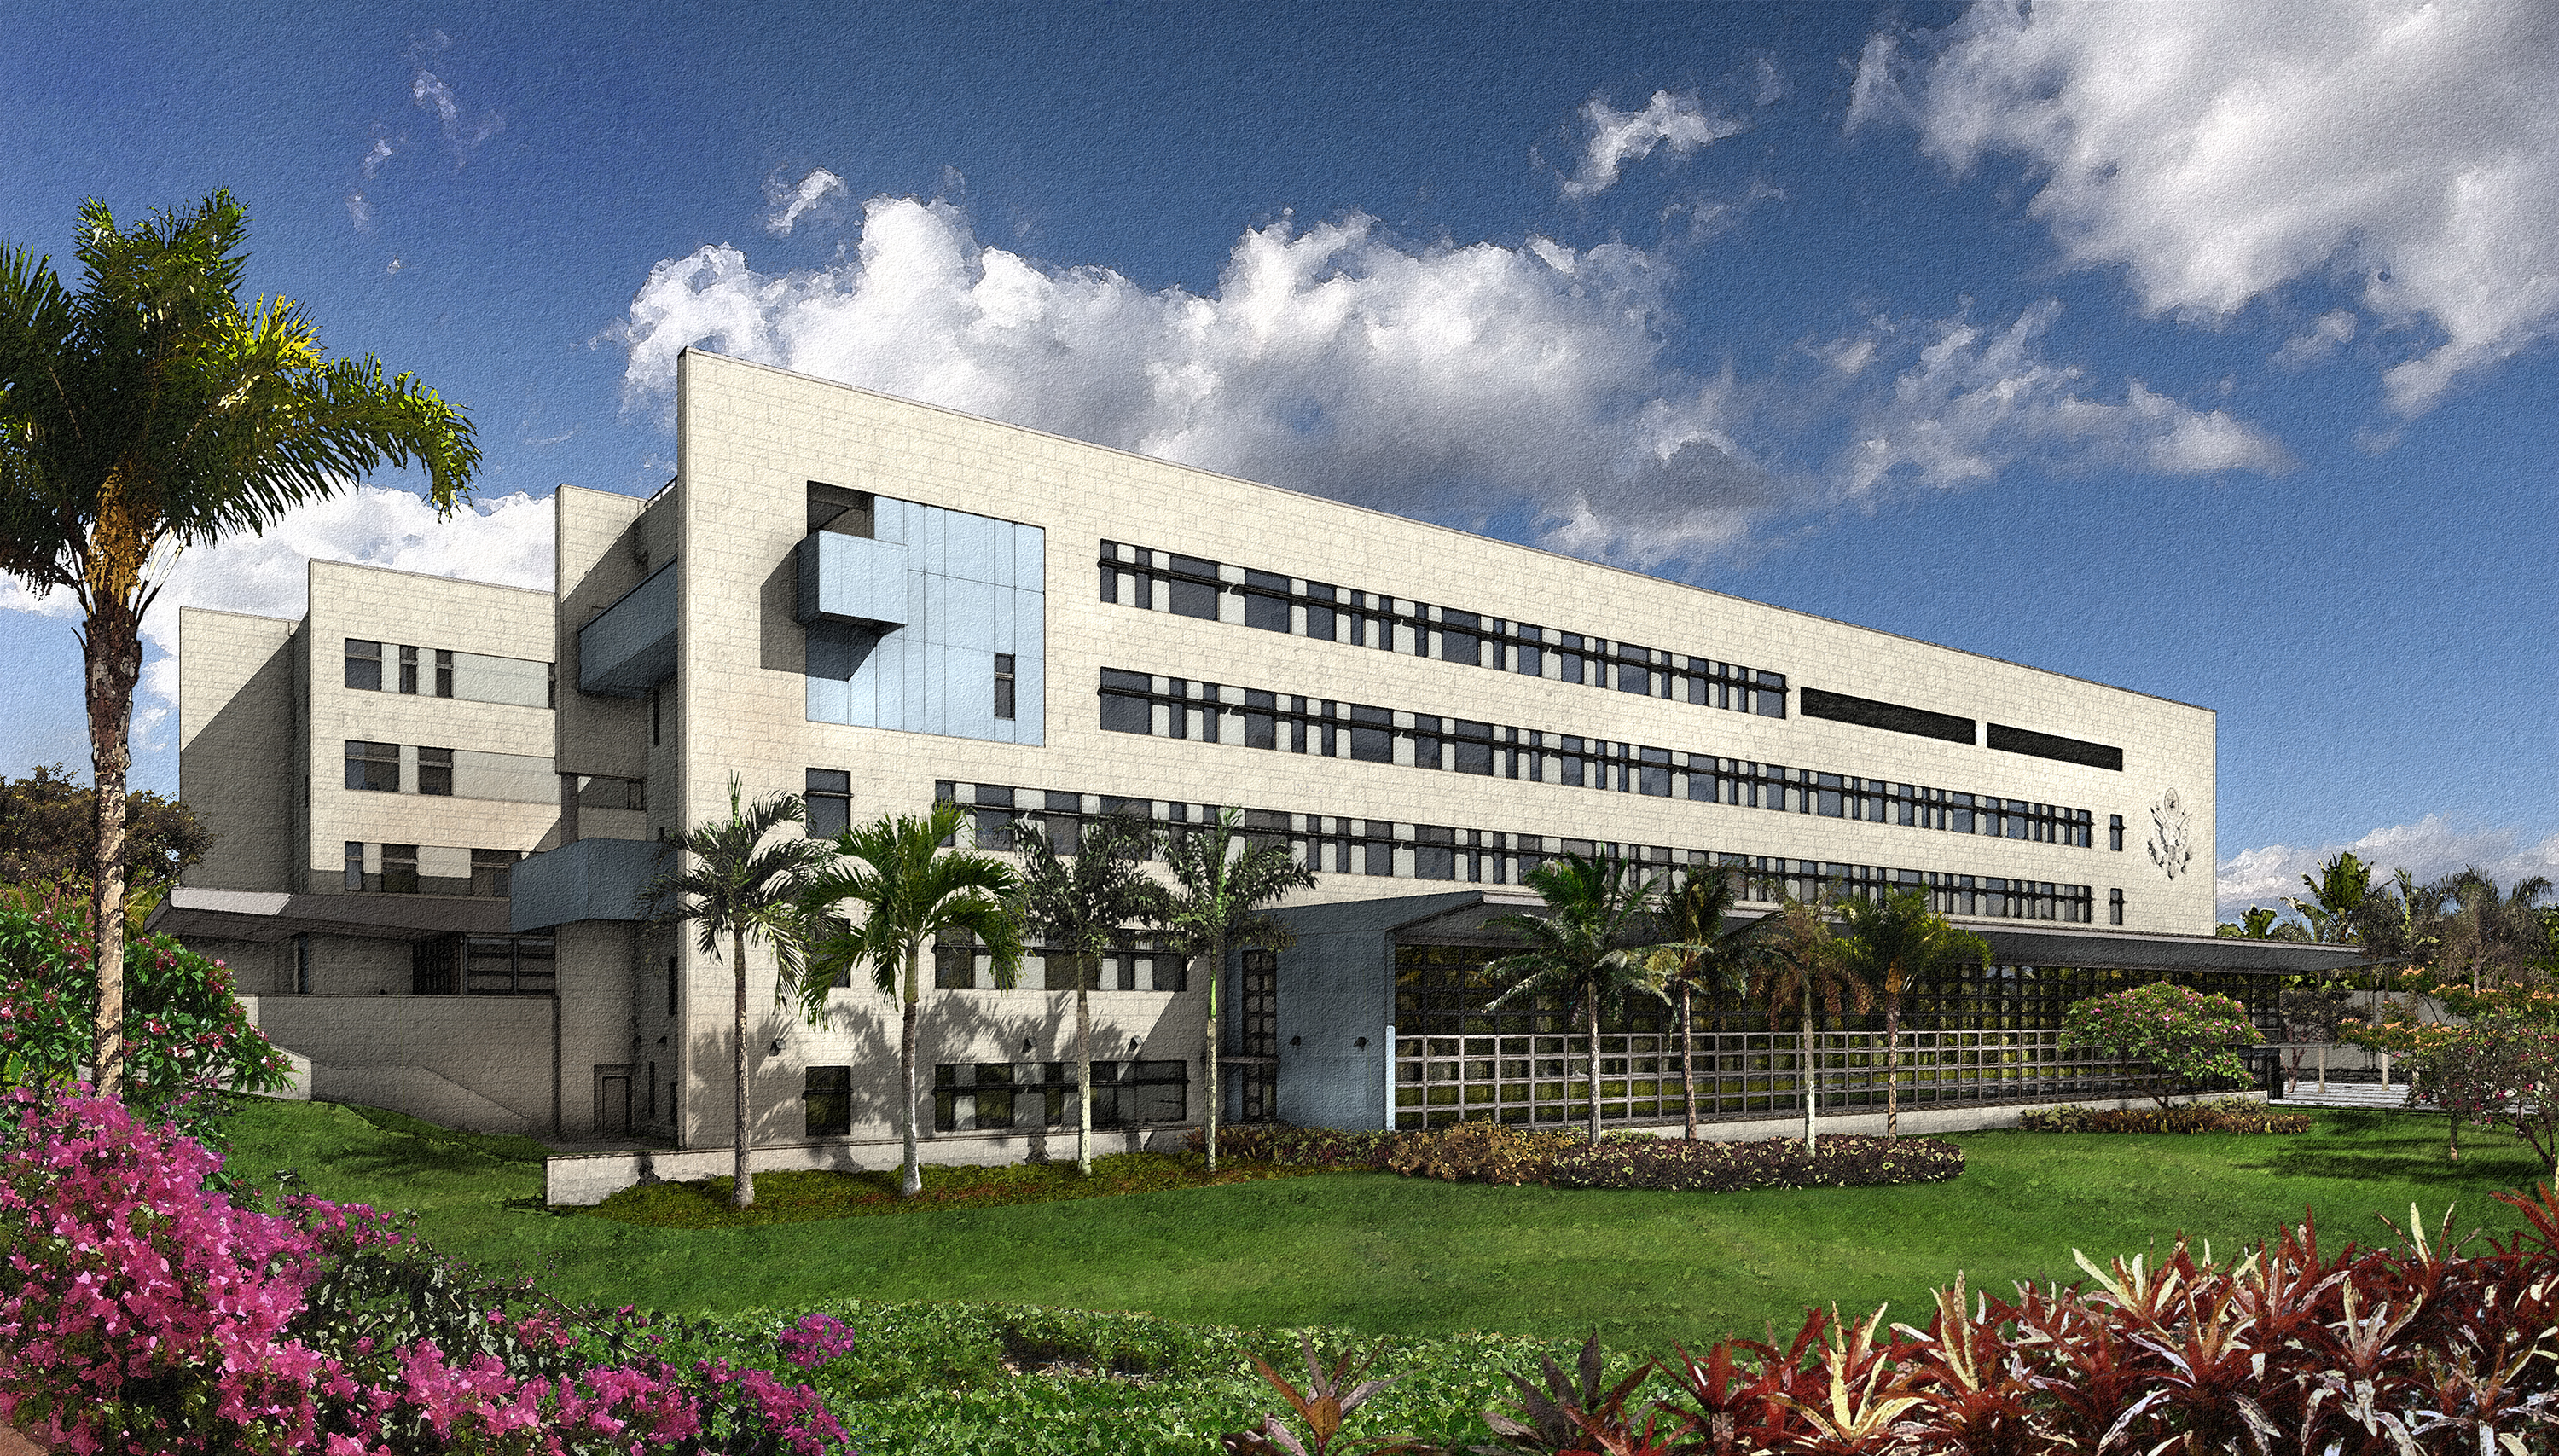 Santo Domingo Dominican Republic  city images : New US Embassy opens in Santo Domingo, Dominican Republic | Caribbean ...